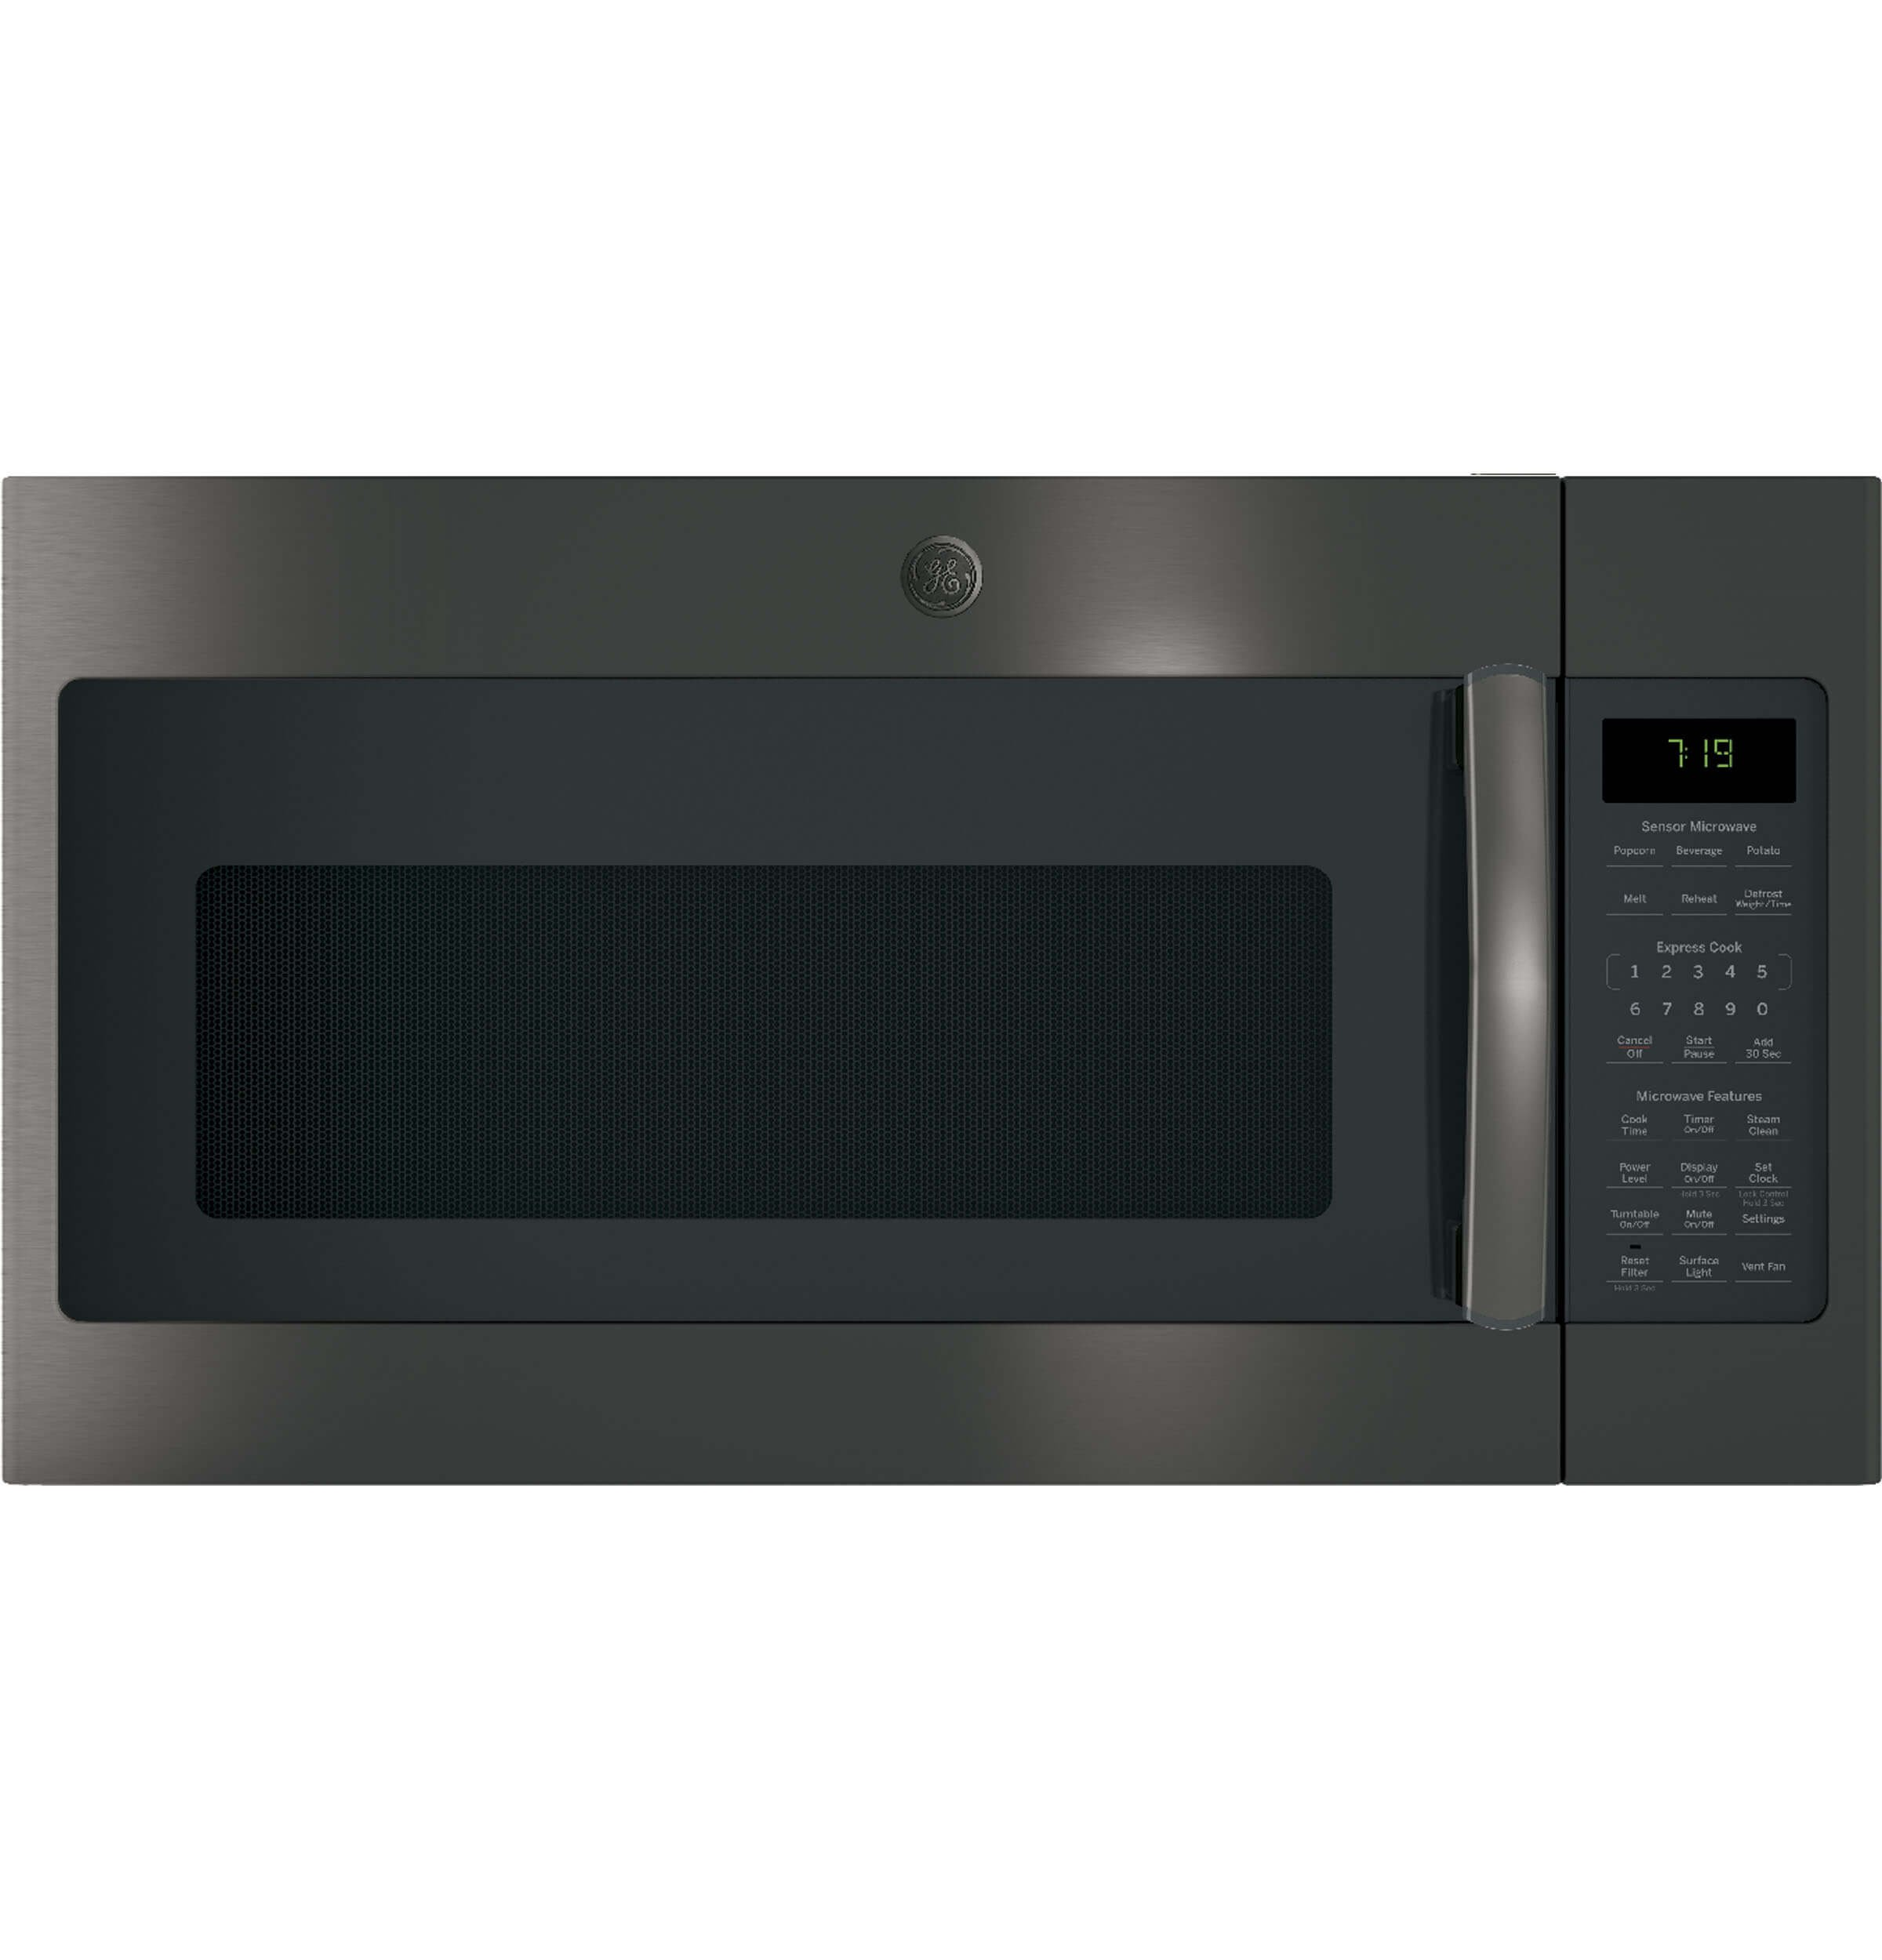 GE JVM7195BLTS Microwave Oven by GE